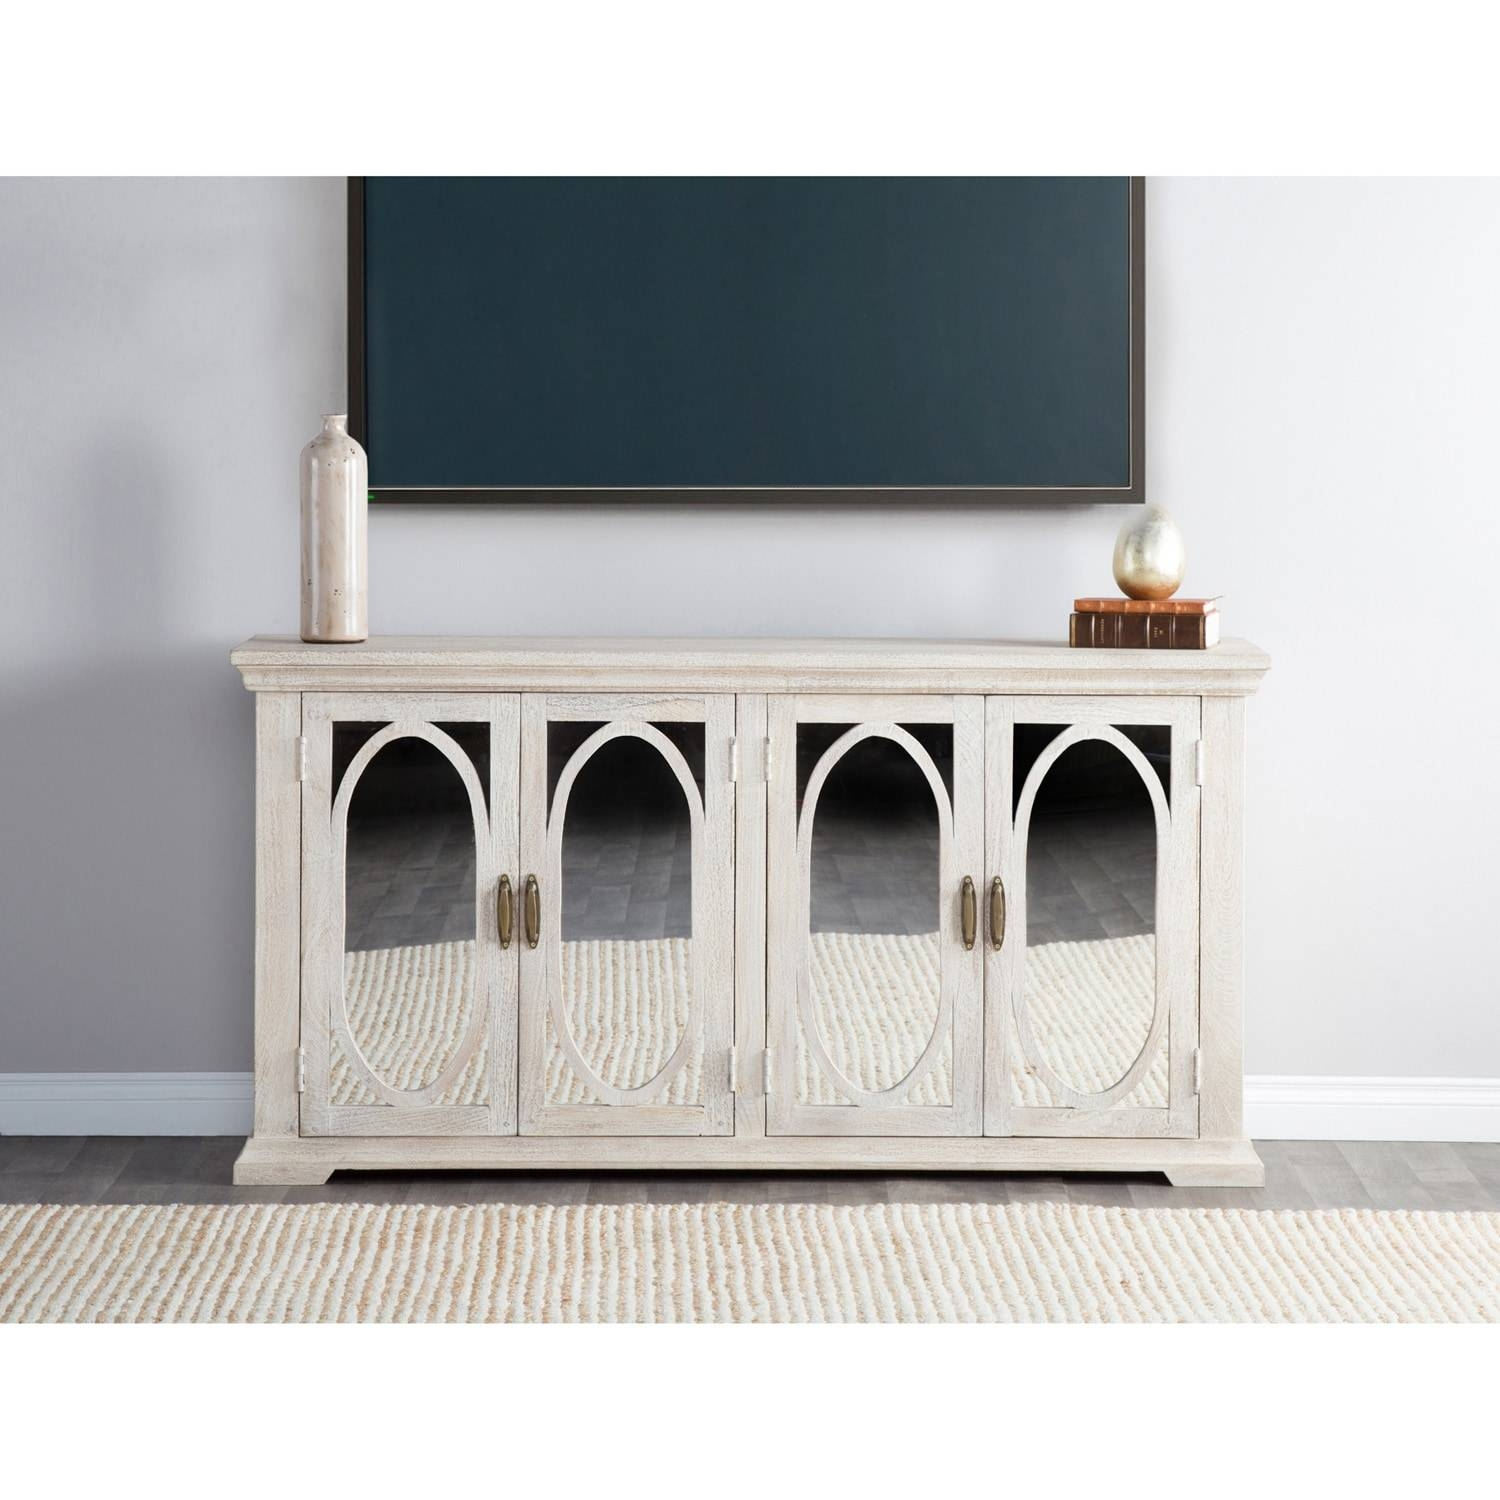 Manchester Wood Mirrored 70-Inch Sideboardkosas Home - Free regarding 70 Inch Sideboards (Image 7 of 15)